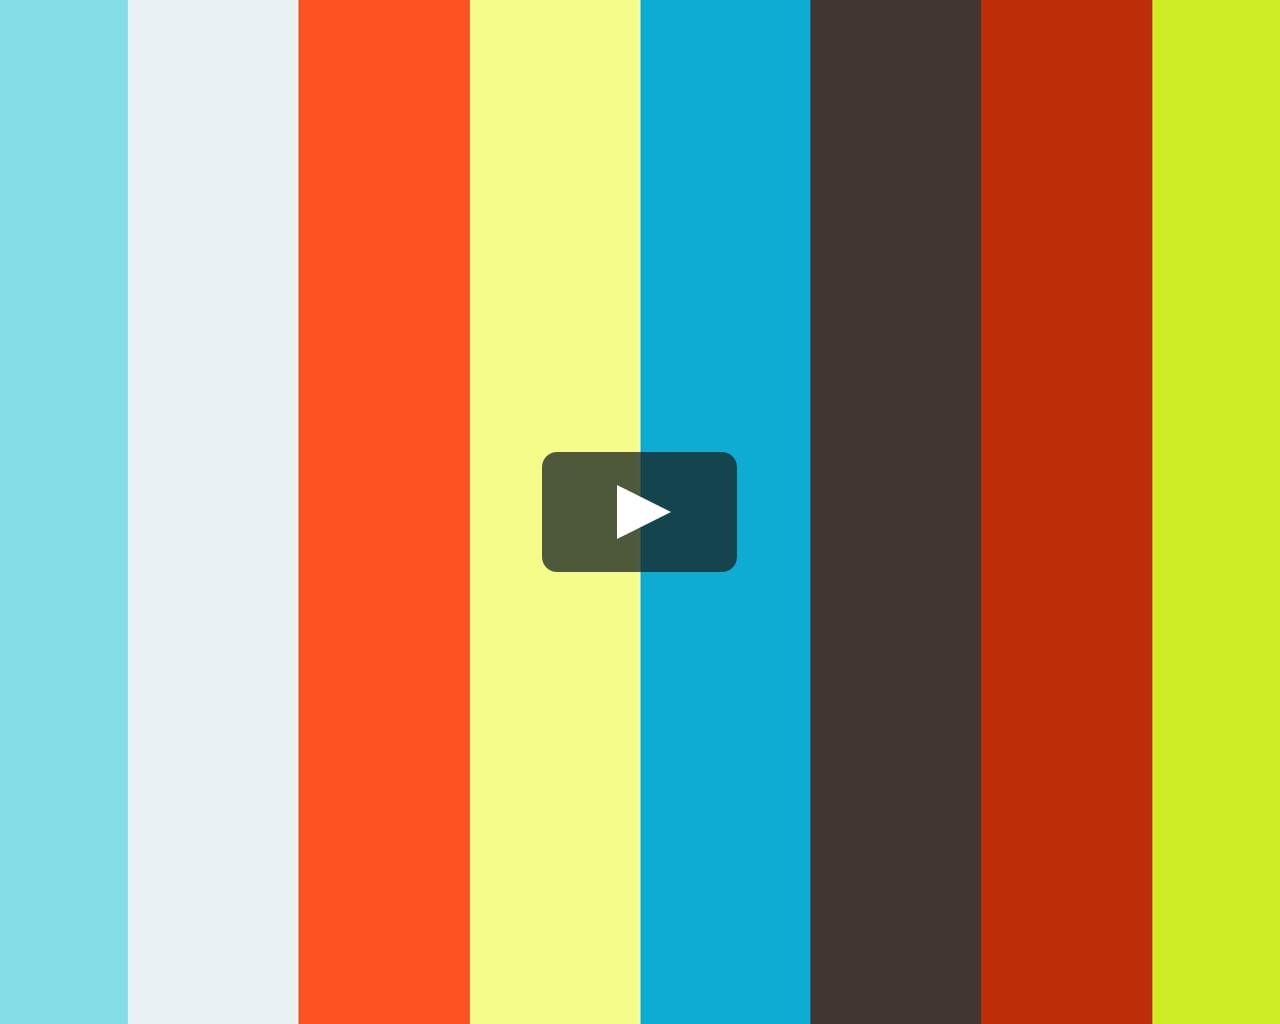 Dulhe Raja Trailer On Vimeo